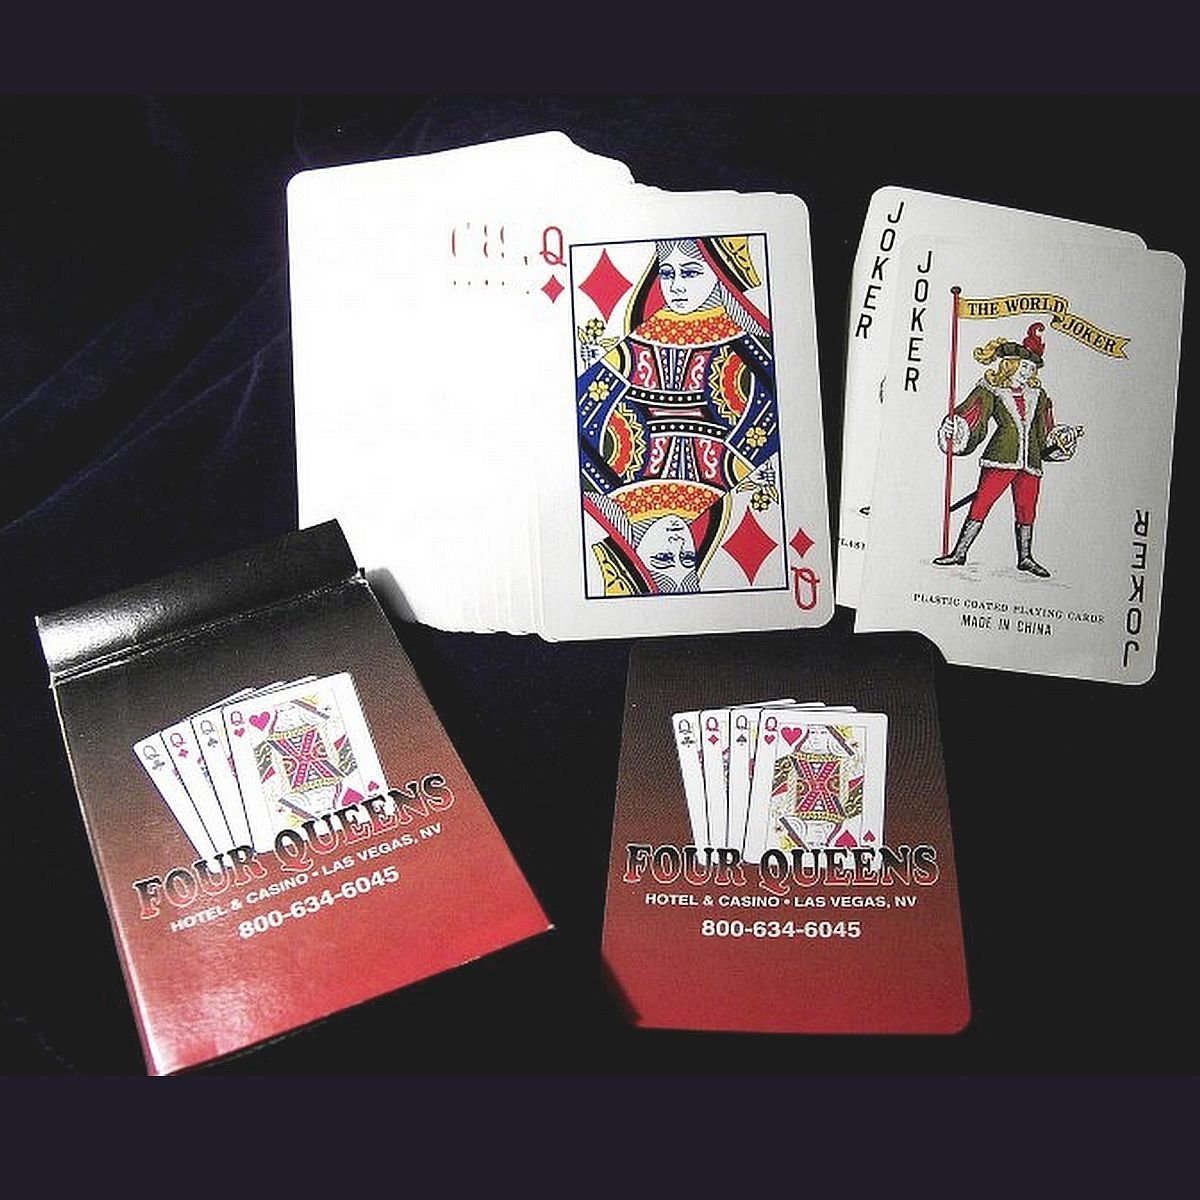 1 Deck Playing Cards Four Queens Hotel & Casino